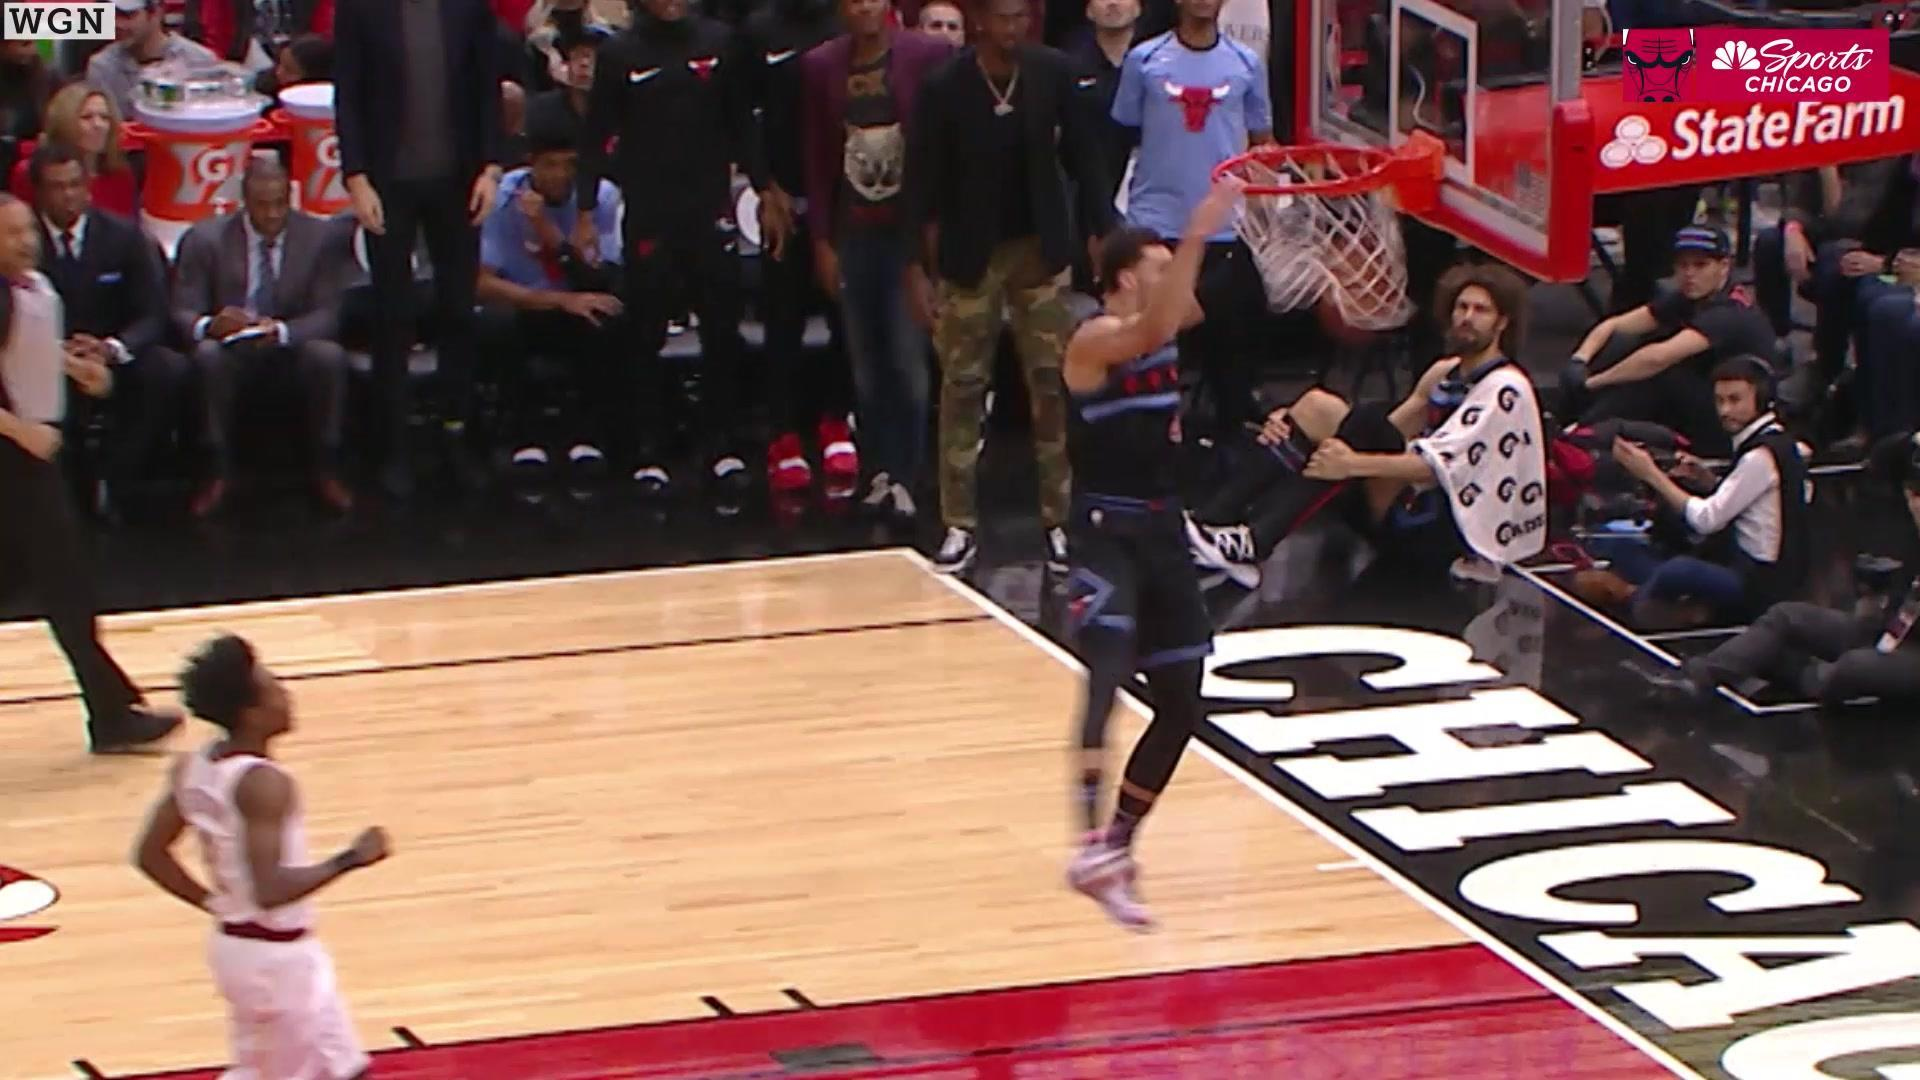 Zach LaVine shows off with 360 jam